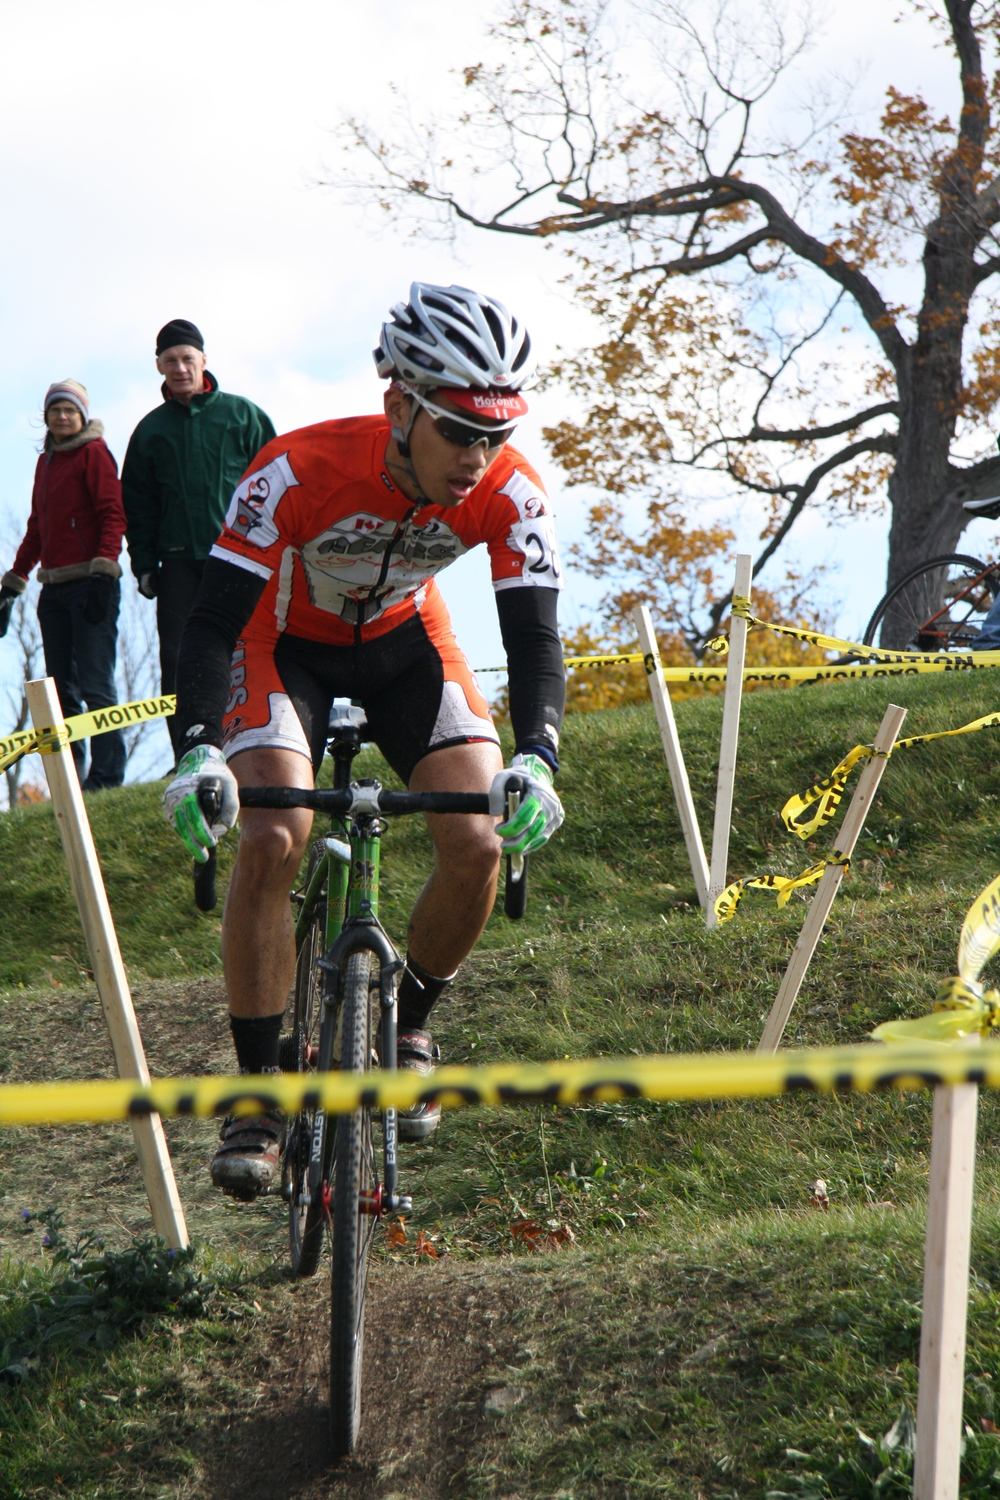 WaiBen descending terrace Kingston Cyclocross